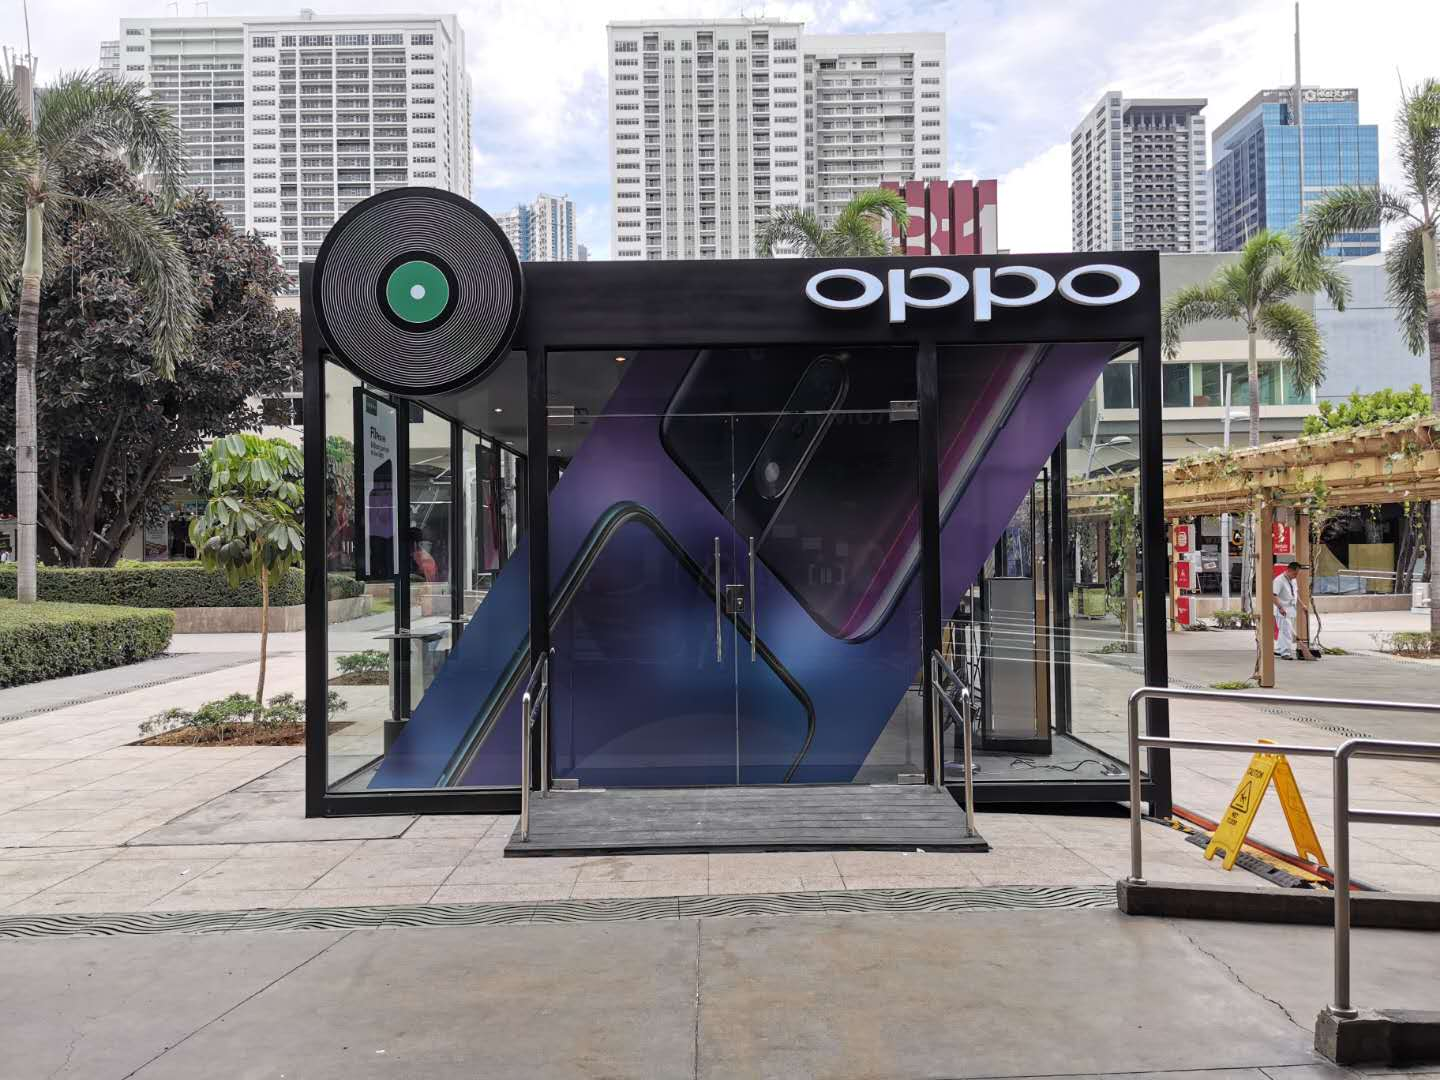 oppo pop-up store, OPPO opens their coolest pop-up store at the heart of BGC, Gadget Pilipinas